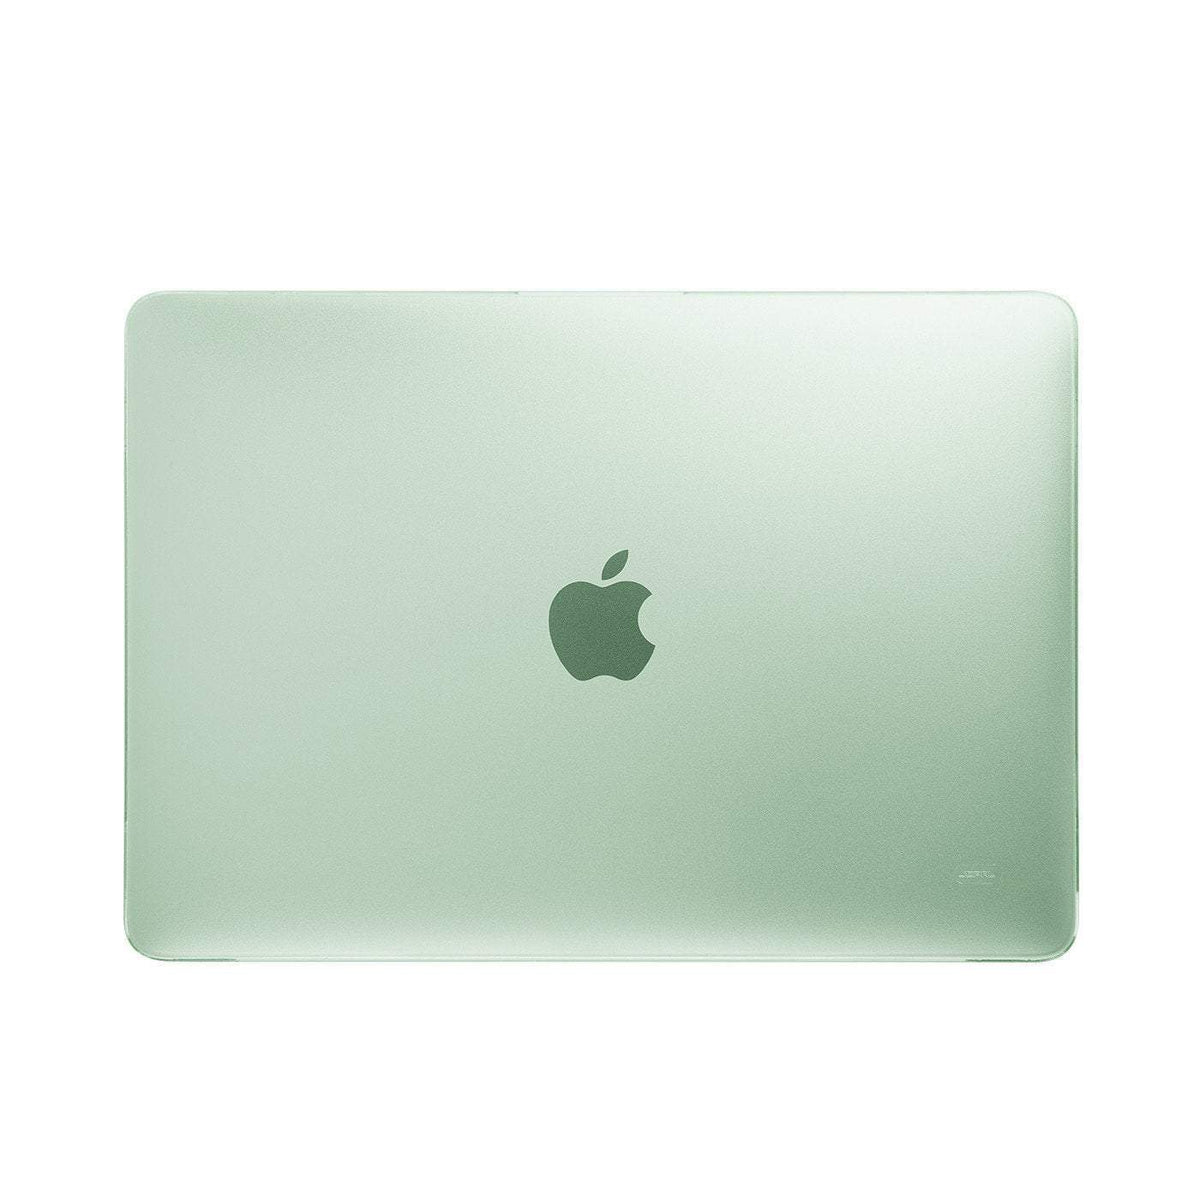 JCPal Case MacGuard Ultra-thin Protective Case for MacBook Air 11""